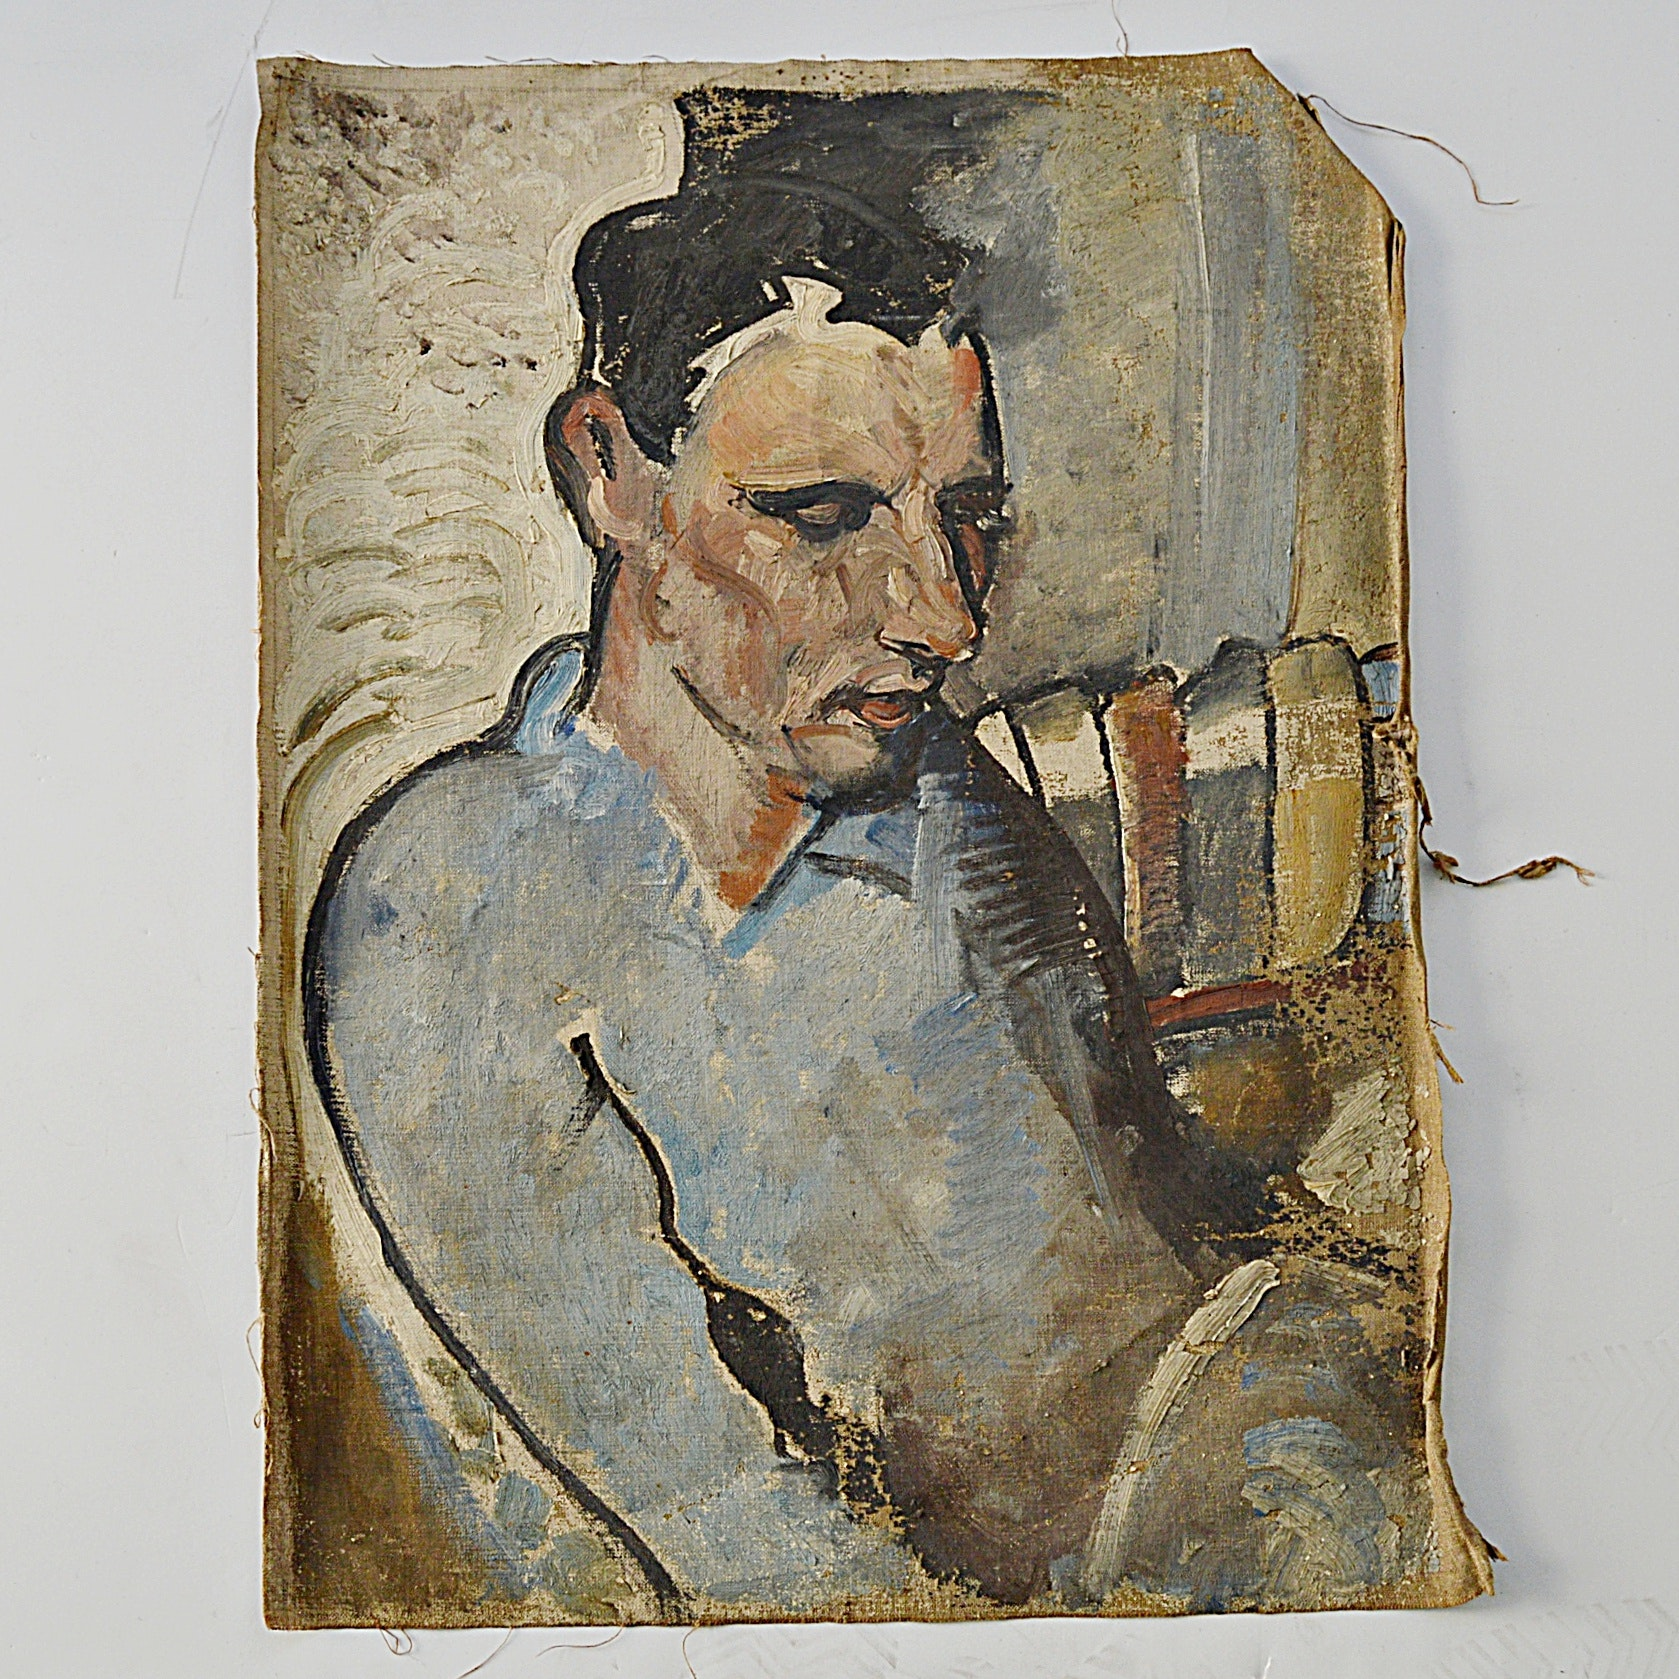 Abstract Expressionistic Oil on Canvas Attributed to Leighton Smith Portrait